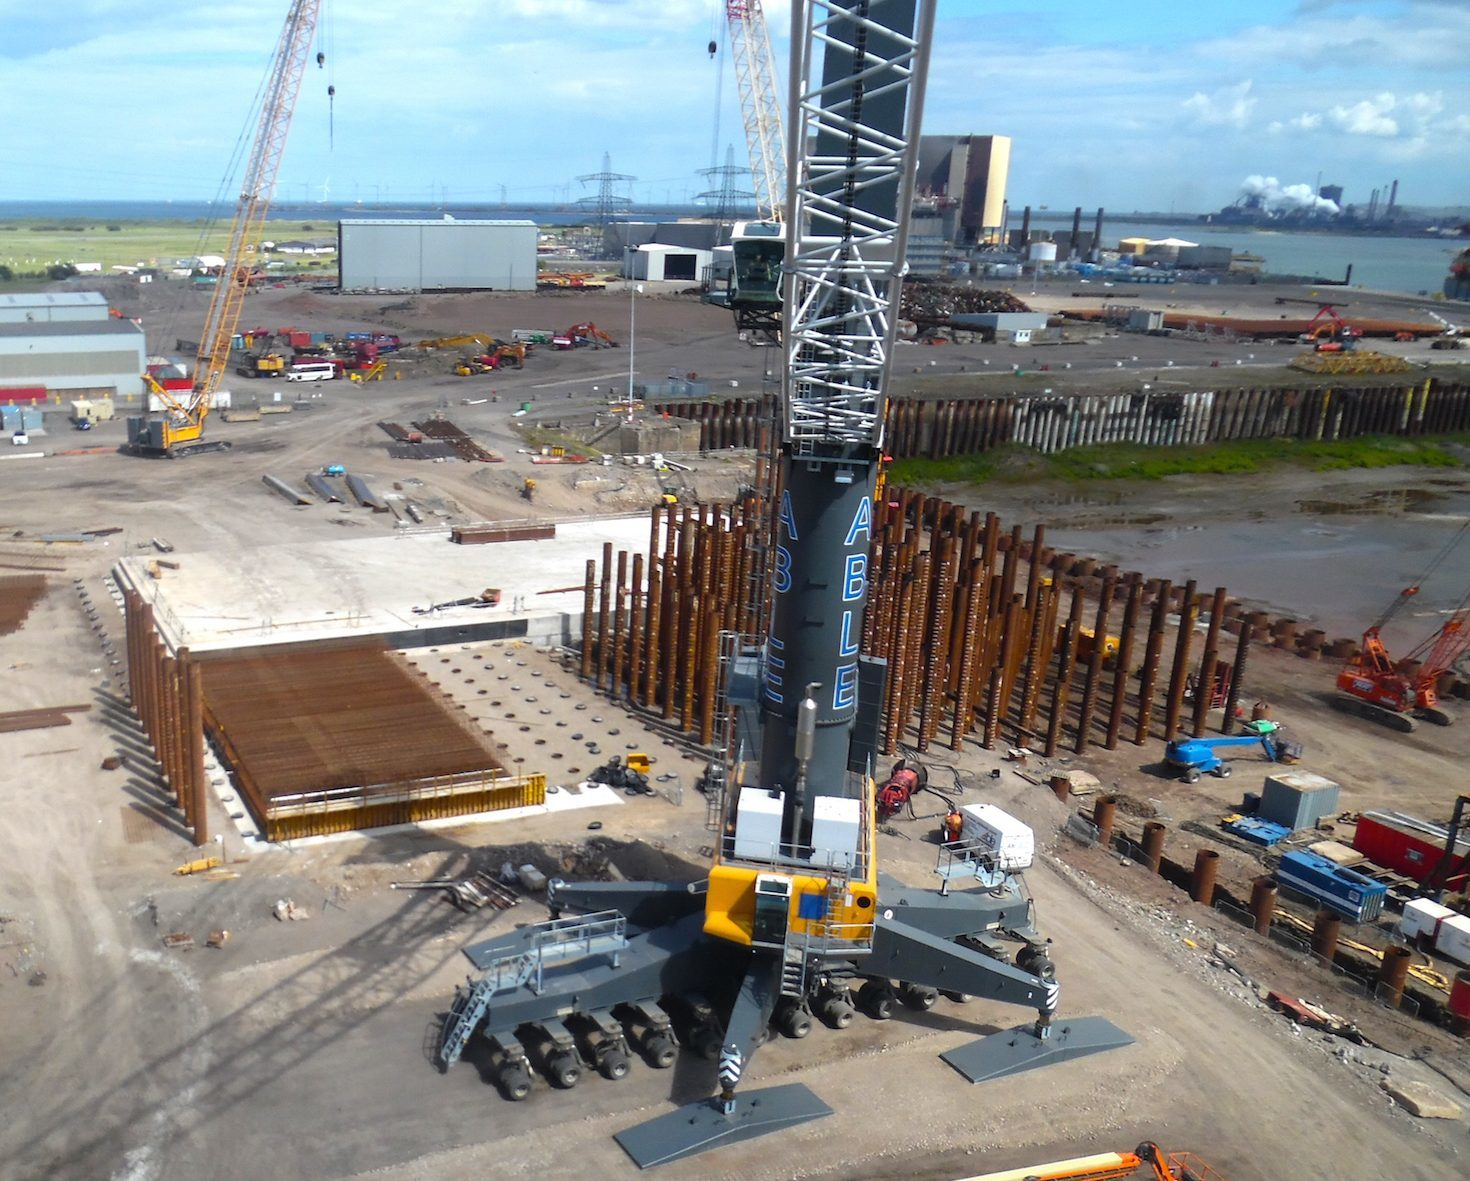 Construction work on Able UK's new ultra-strong quayside. Picture from Able UK.